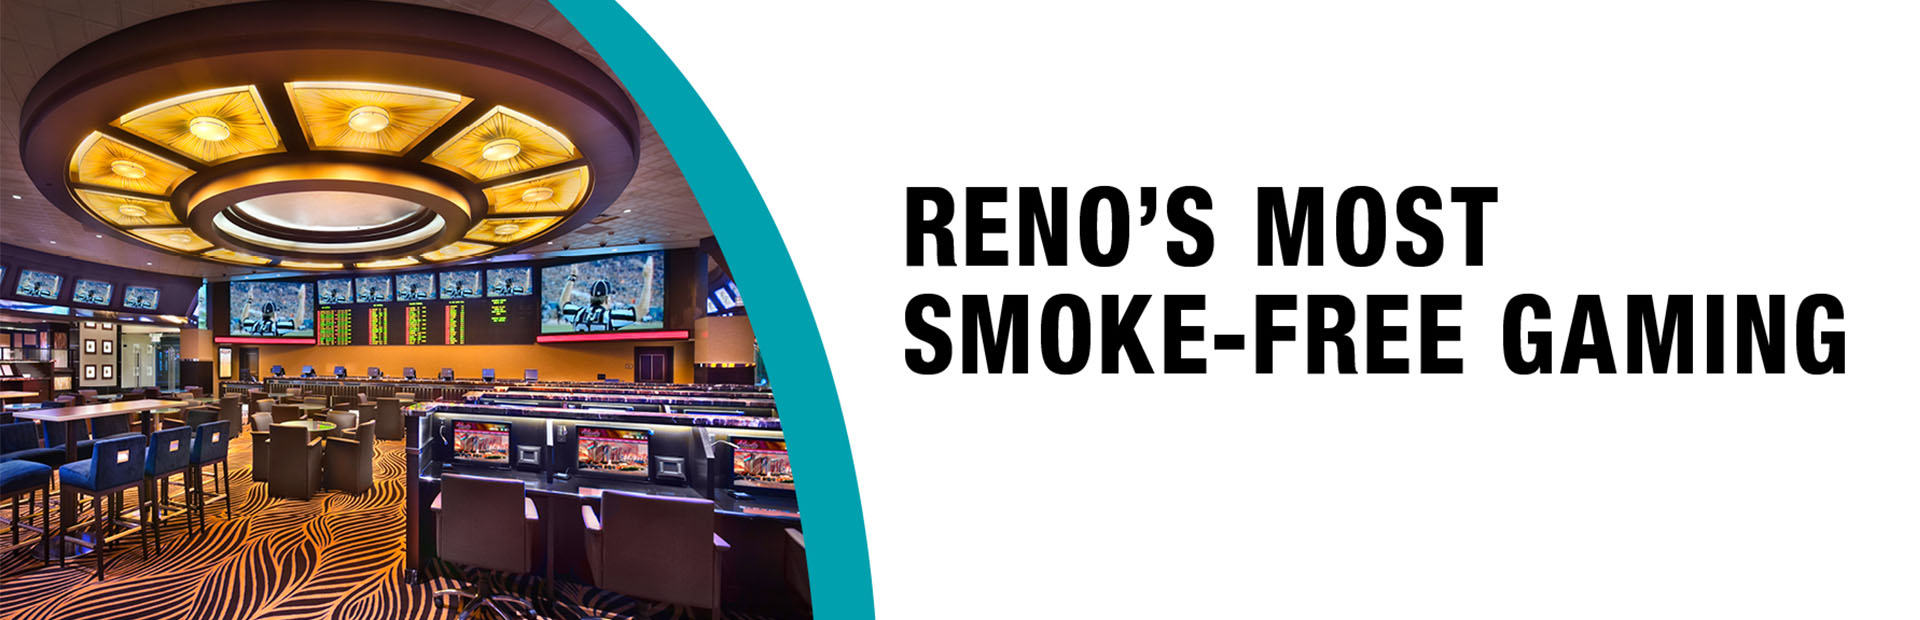 Reno's Most Smoke Free Gaming at Atlantis